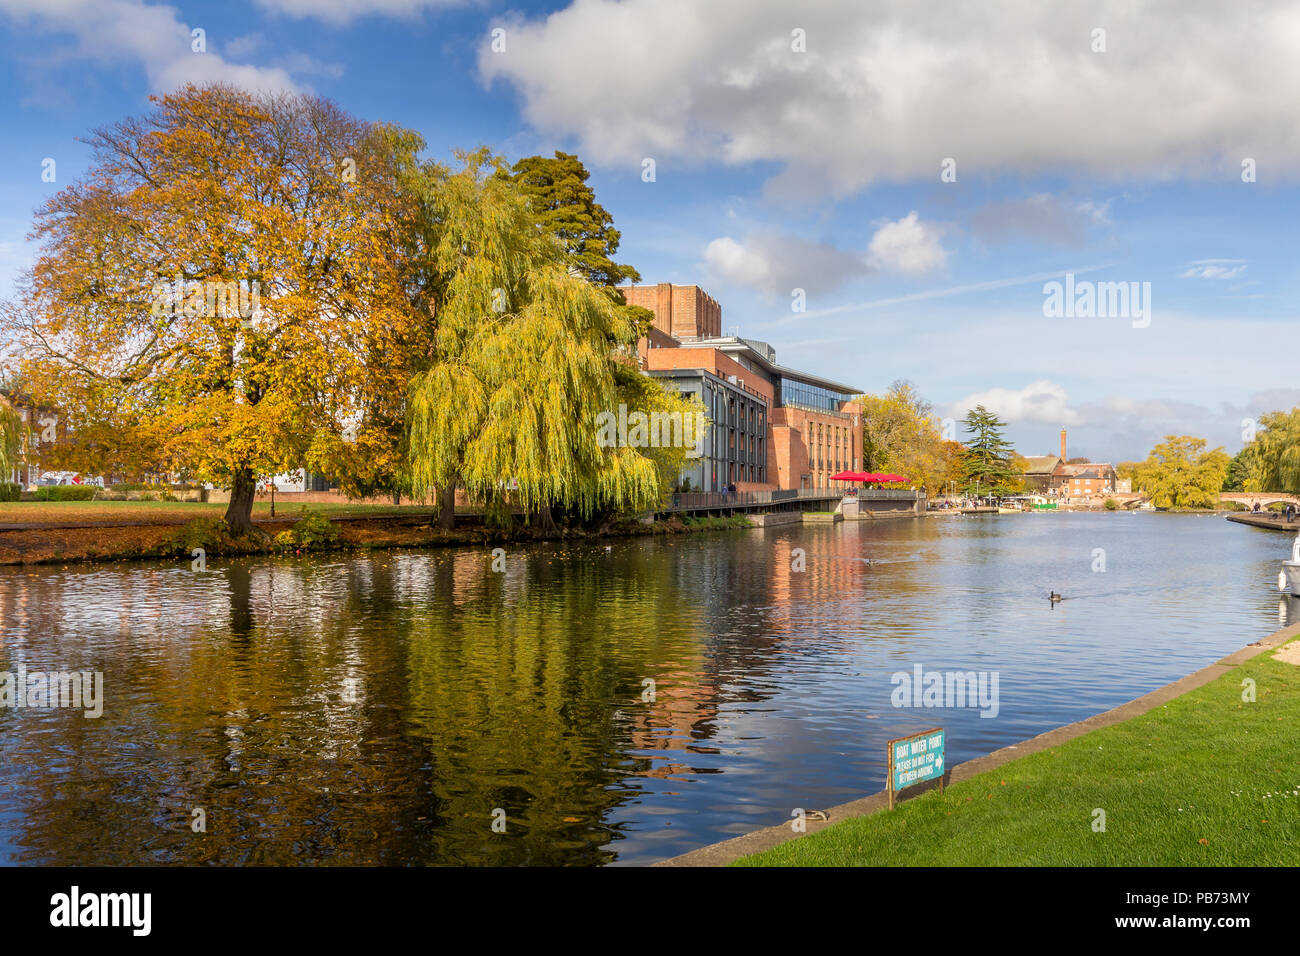 RSC Theatre view from across the river in Stratford upon Avon. - Stock Image